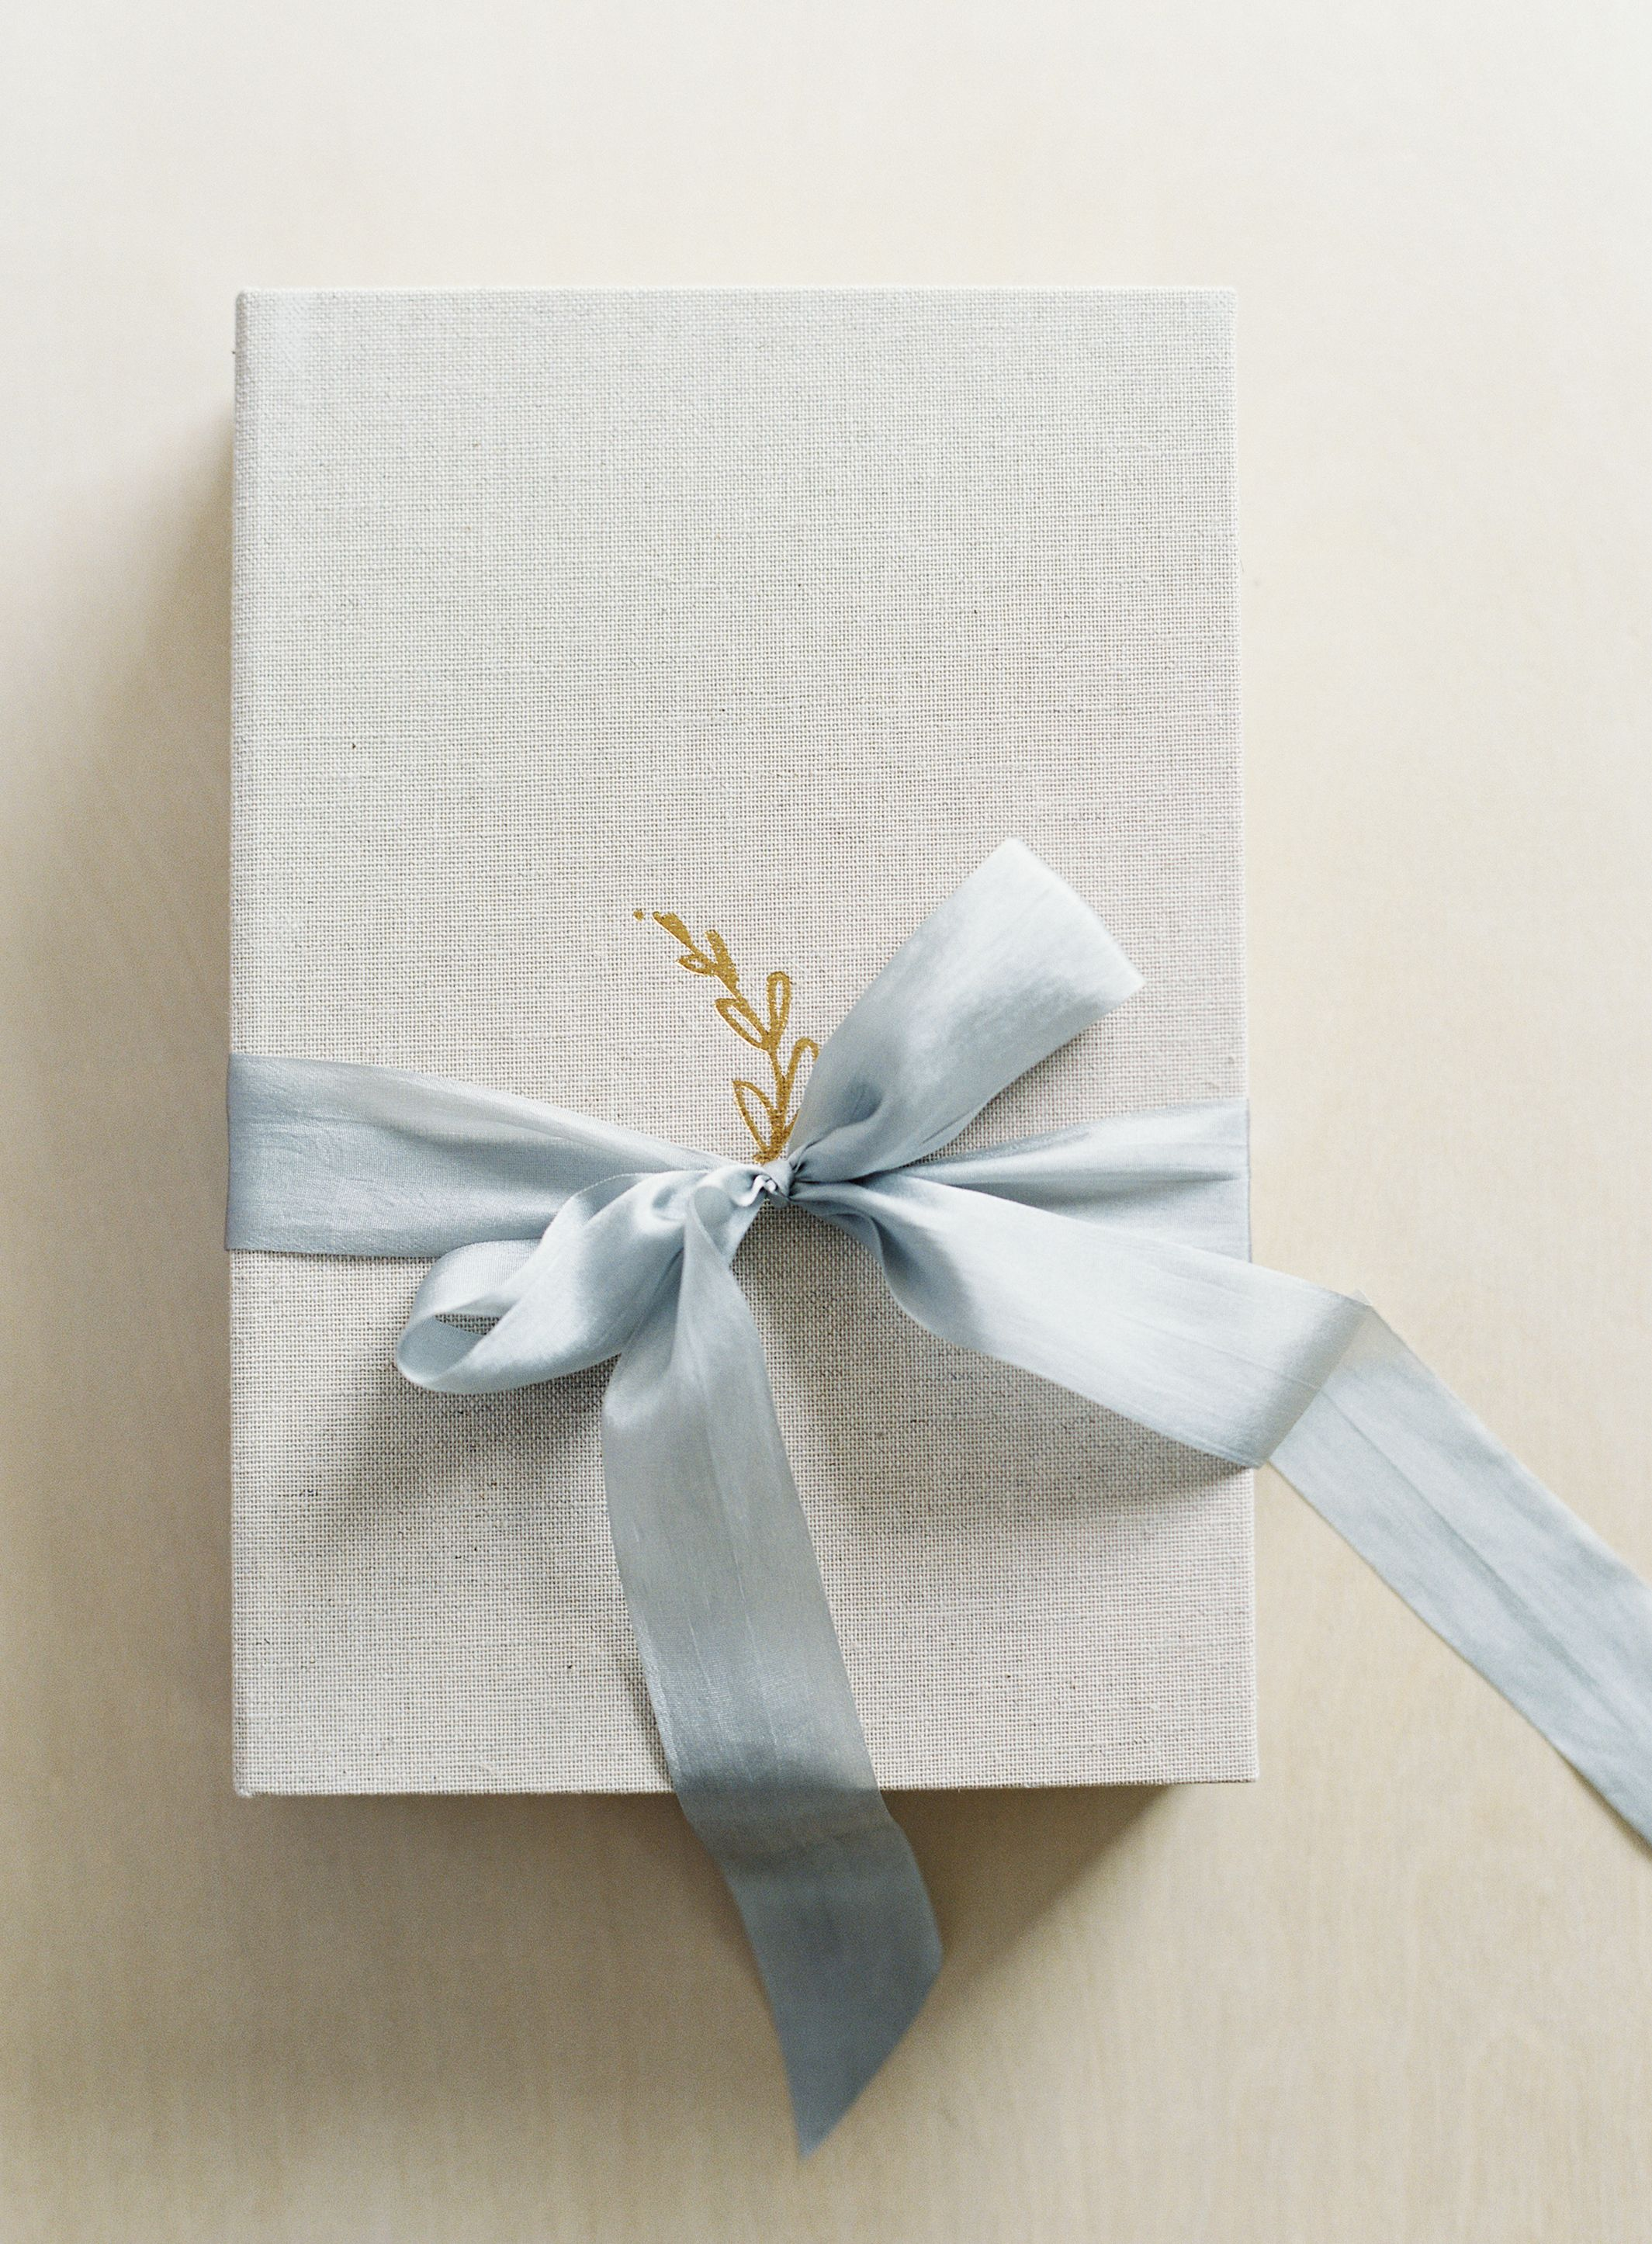 Heirloom Bindery Print Box Print Boxwedding Albumwrapping Ideasgift